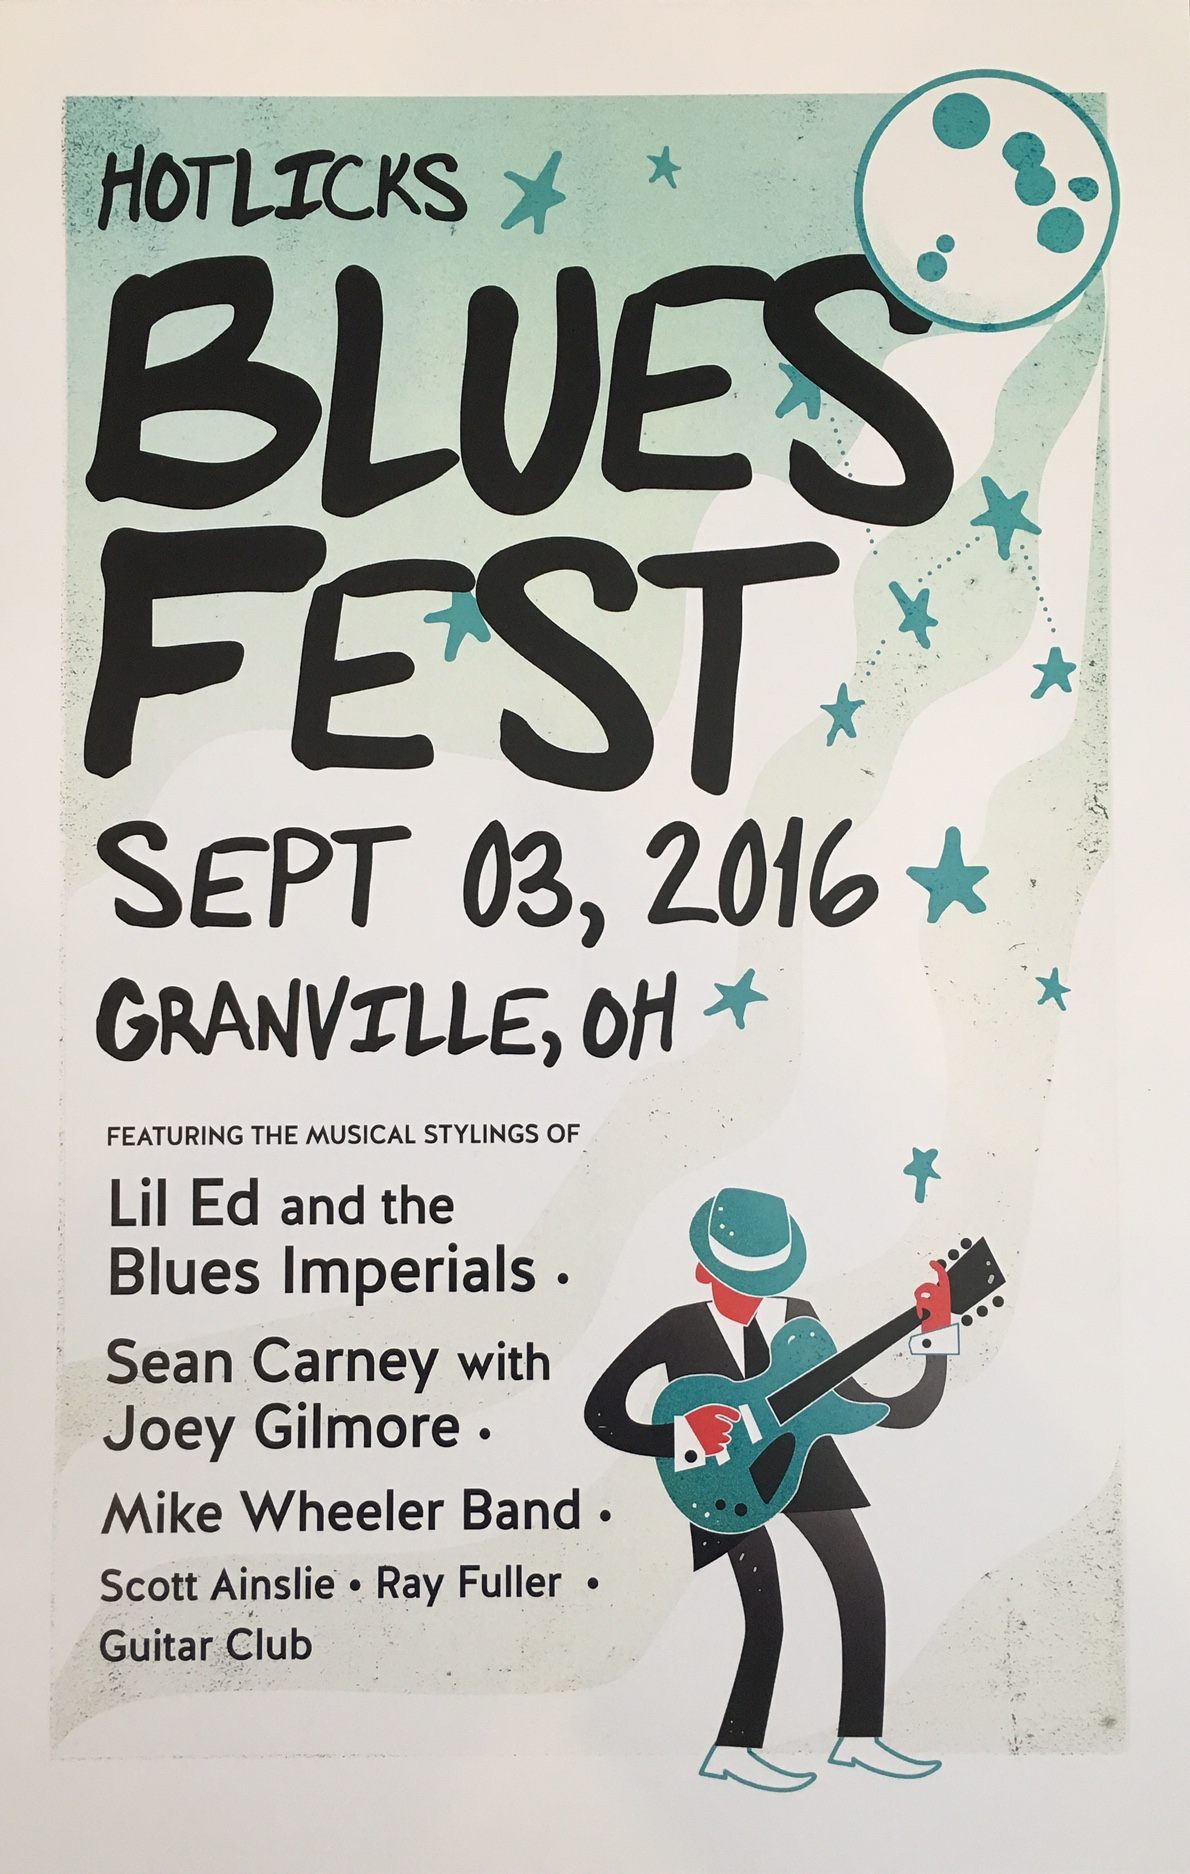 Hotlicks Blues Fest 3.jpg